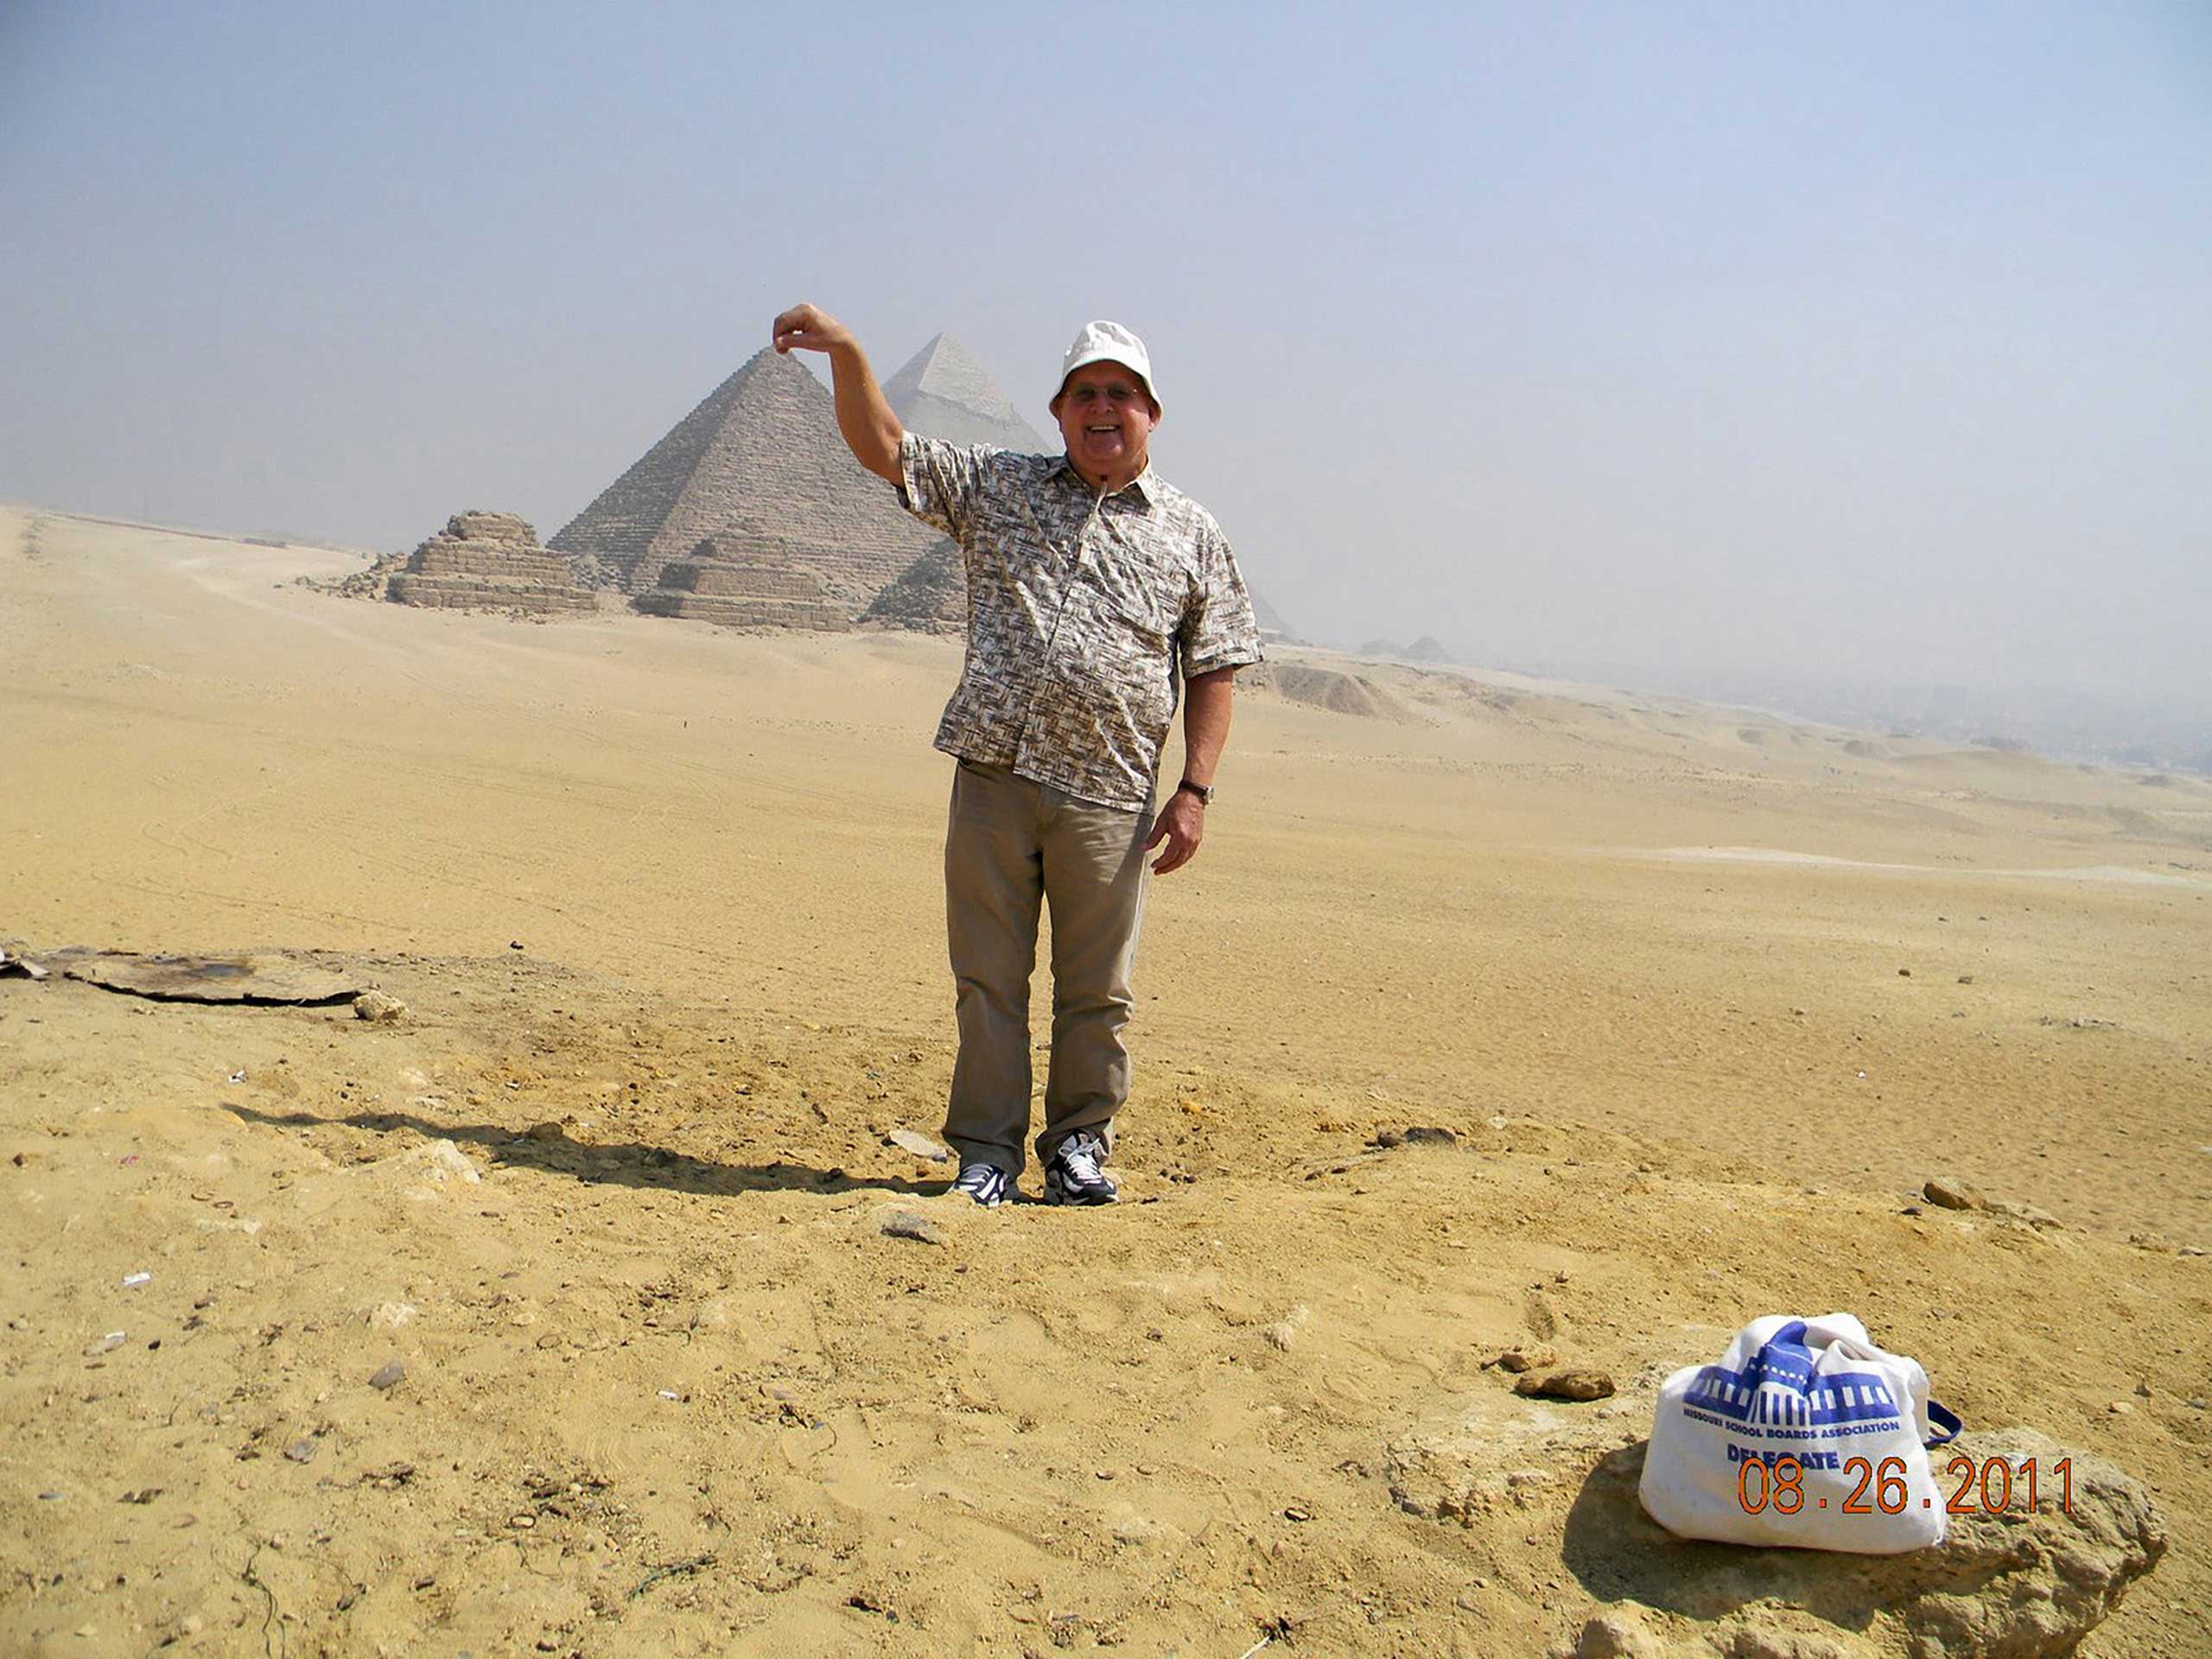 Touch the Pyramids III.  Are the pyramids really that tall? Look, I am touching the top of the tallest one . Cairo, Egypt, 2011.